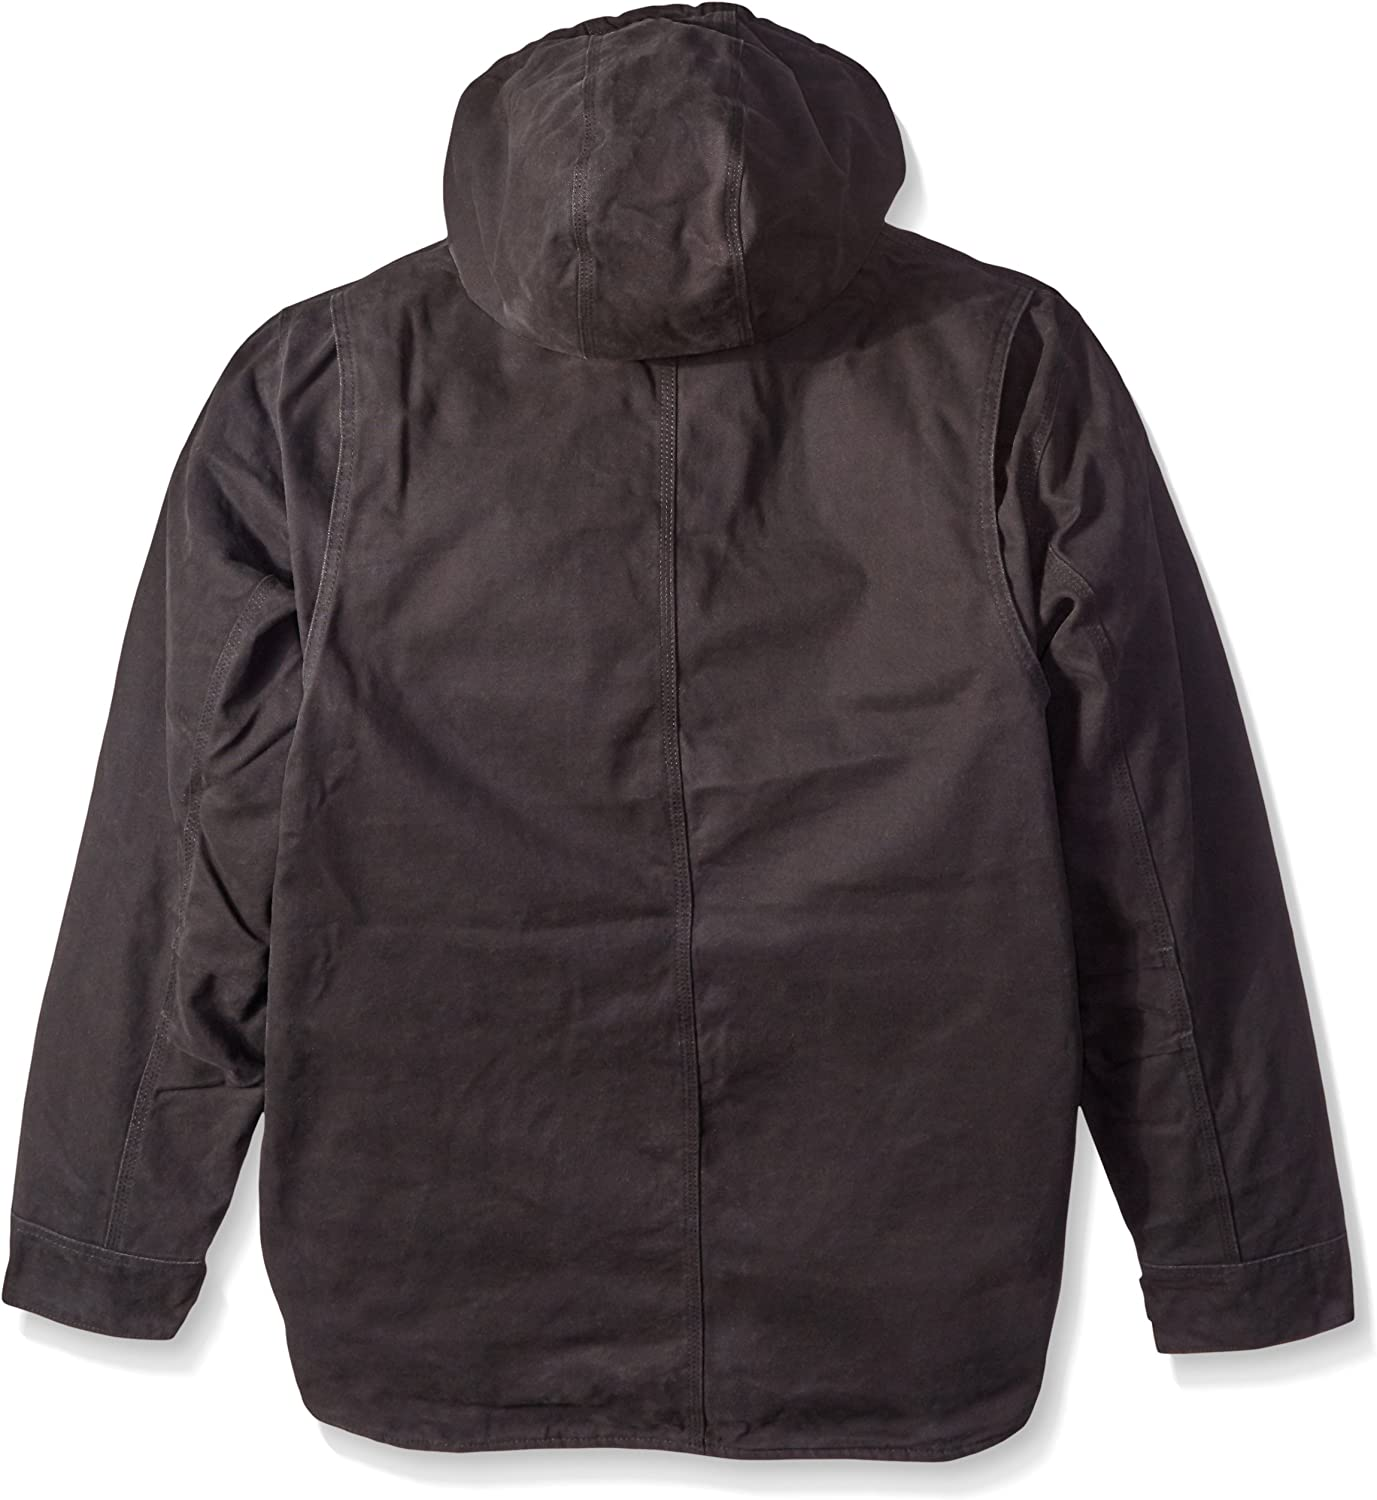 Berne Mens Concealed Carry Echo One One Jacket